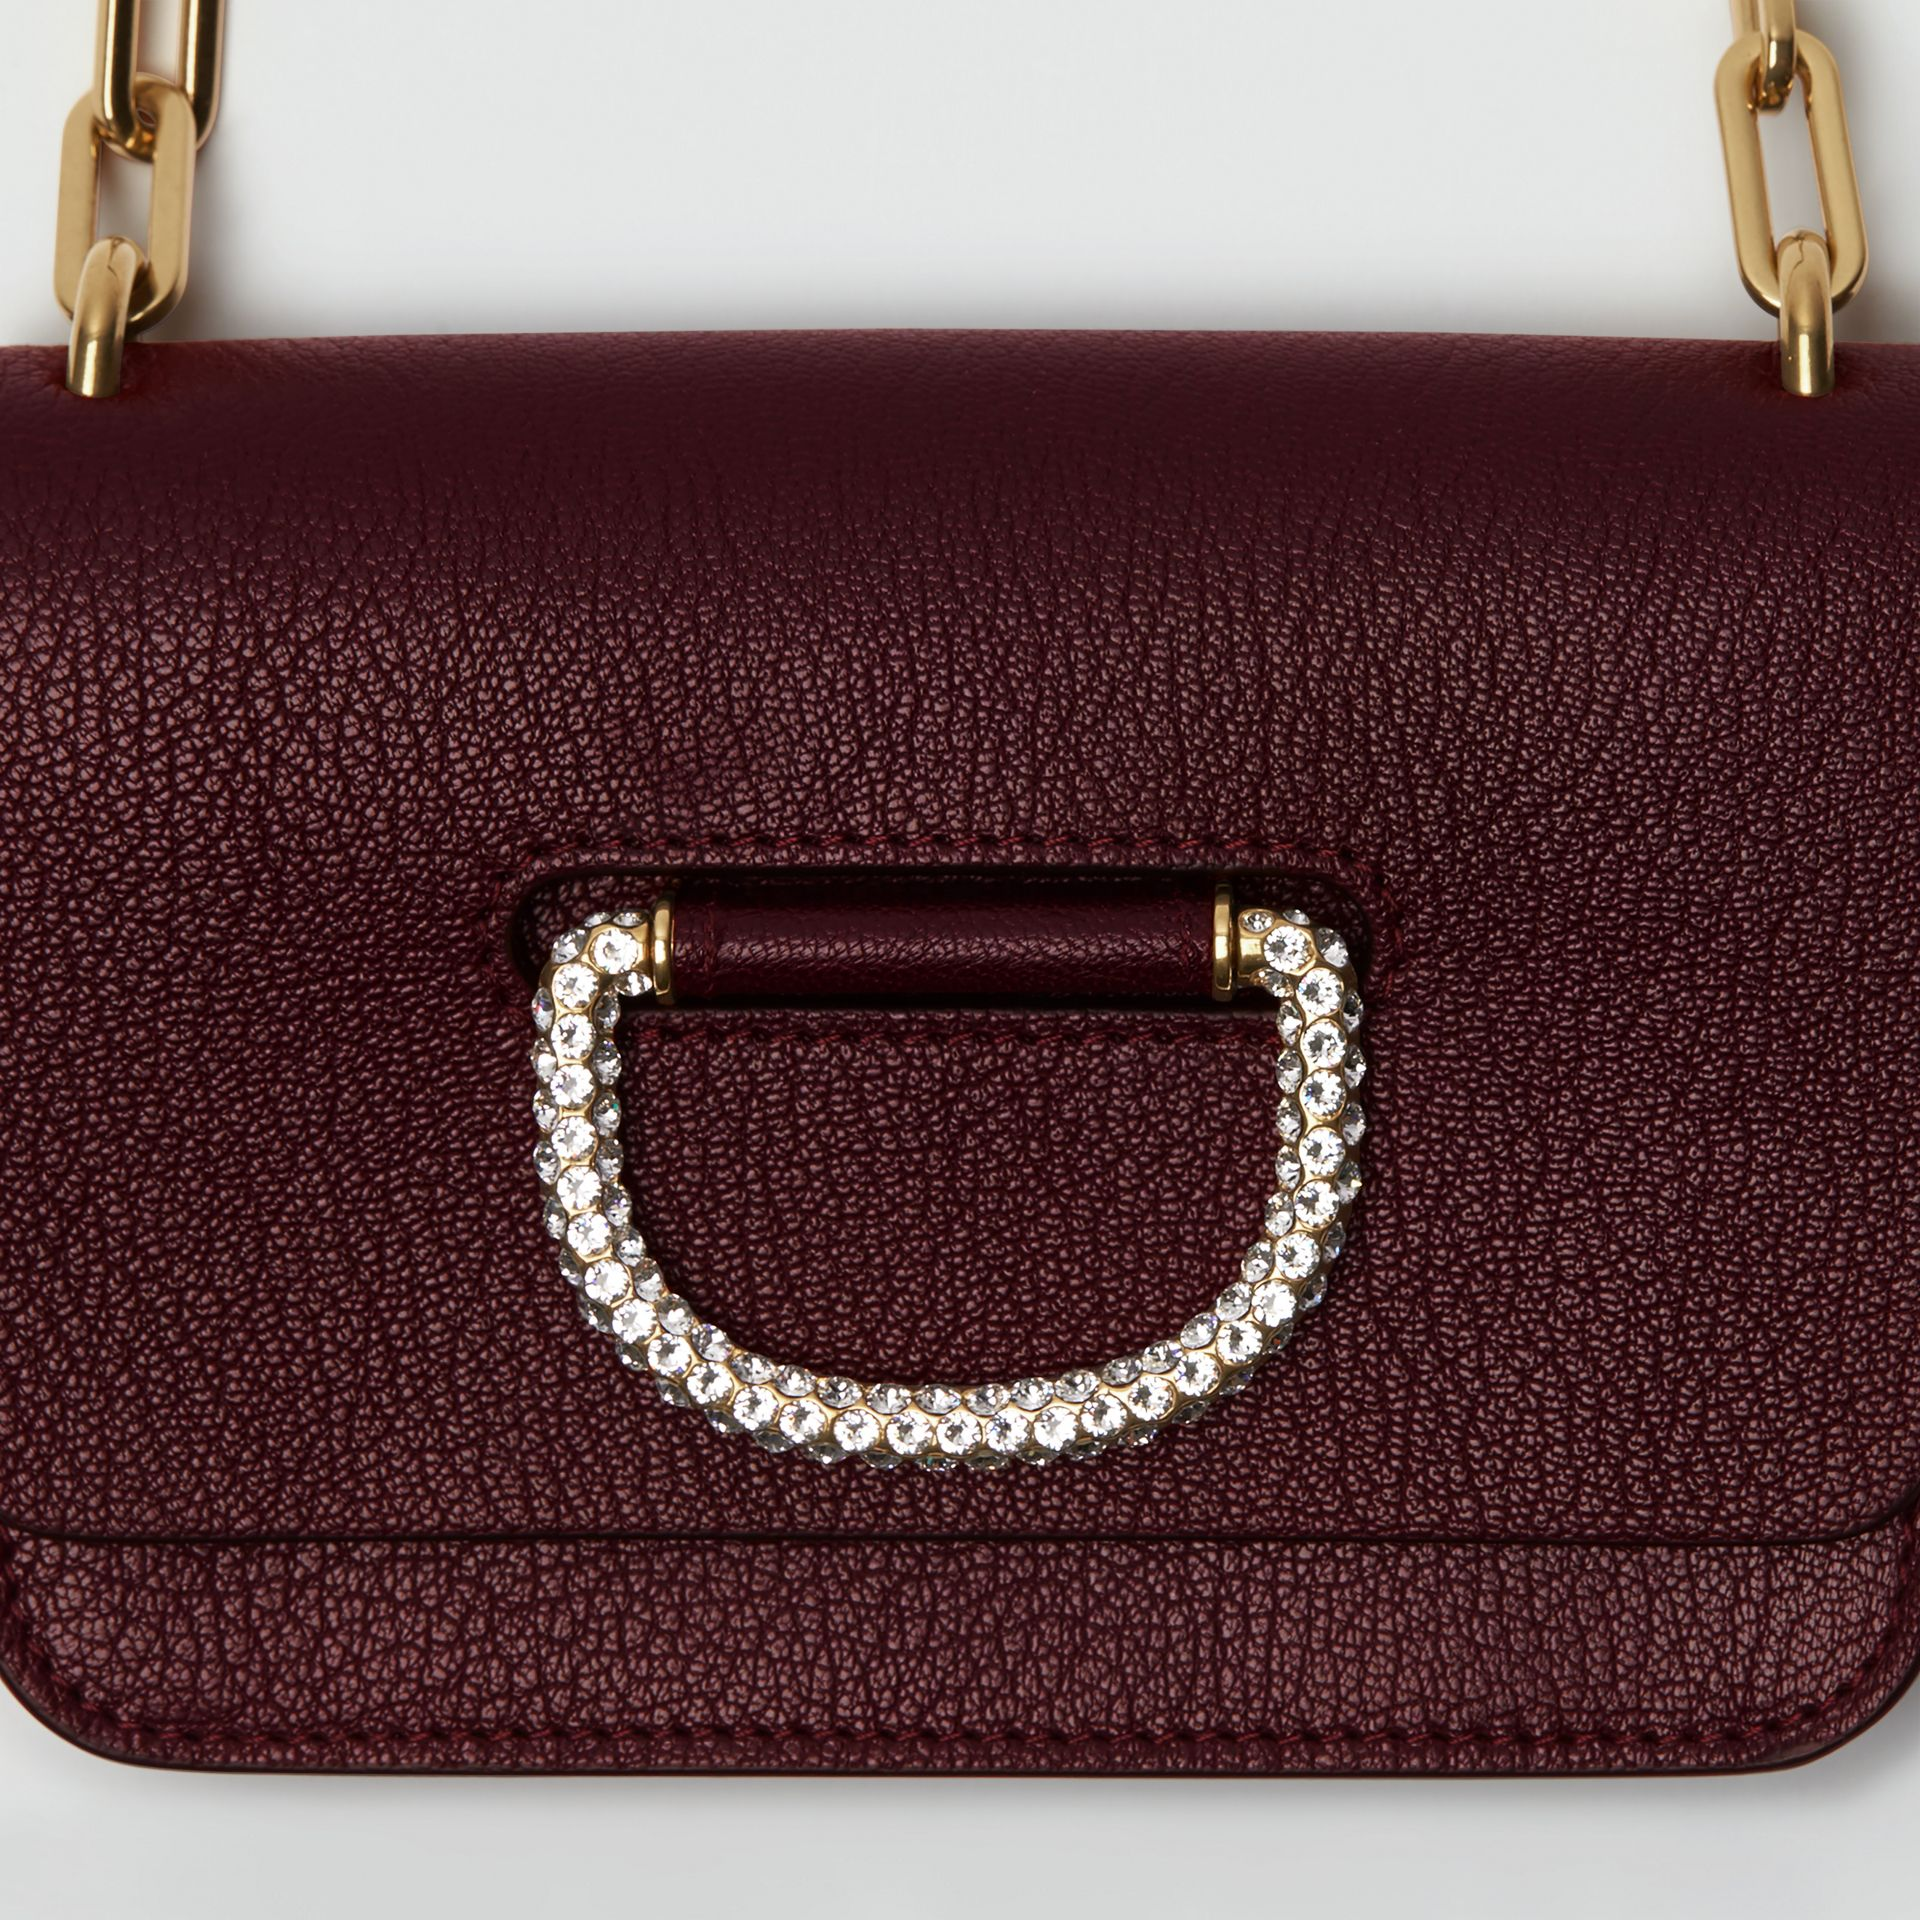 The Mini Leather Crystal D-ring Bag in Deep Claret - Women | Burberry - gallery image 1